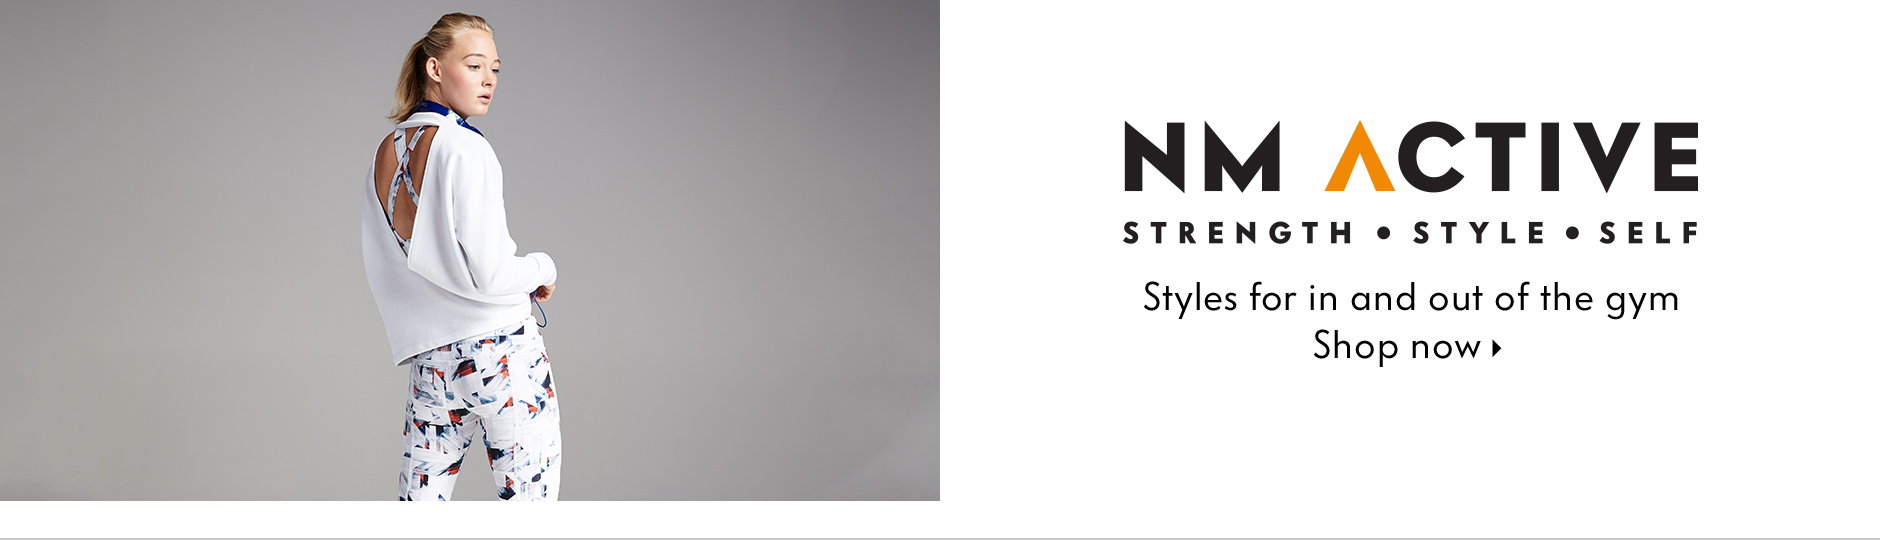 NM Active - Styles that work hard in and out of the gym